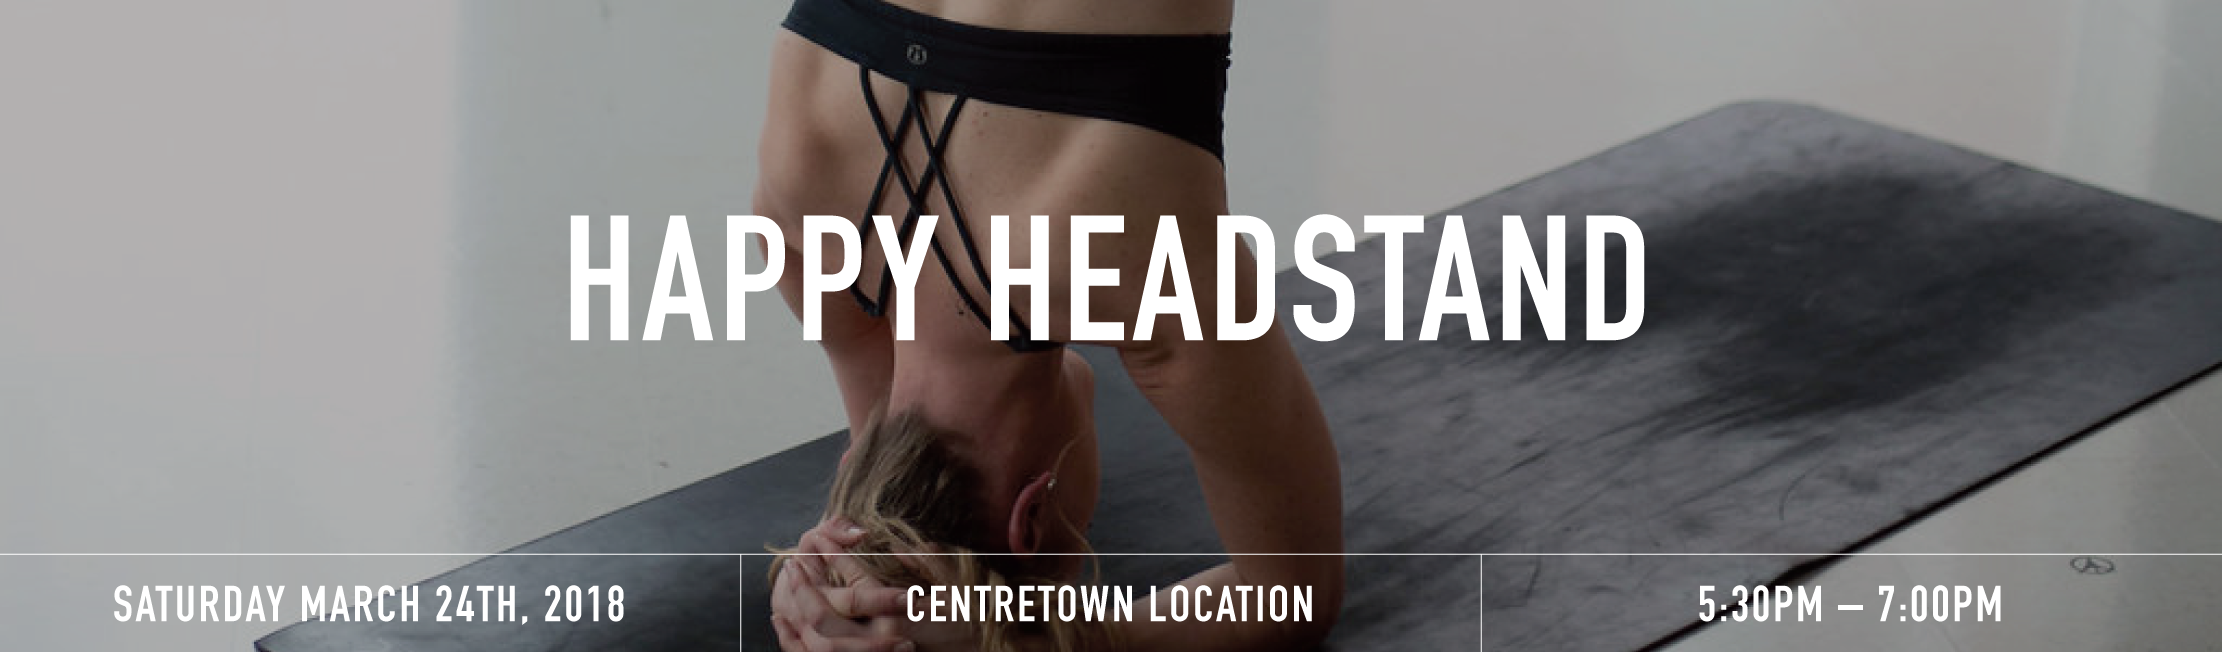 Happy headstand banner